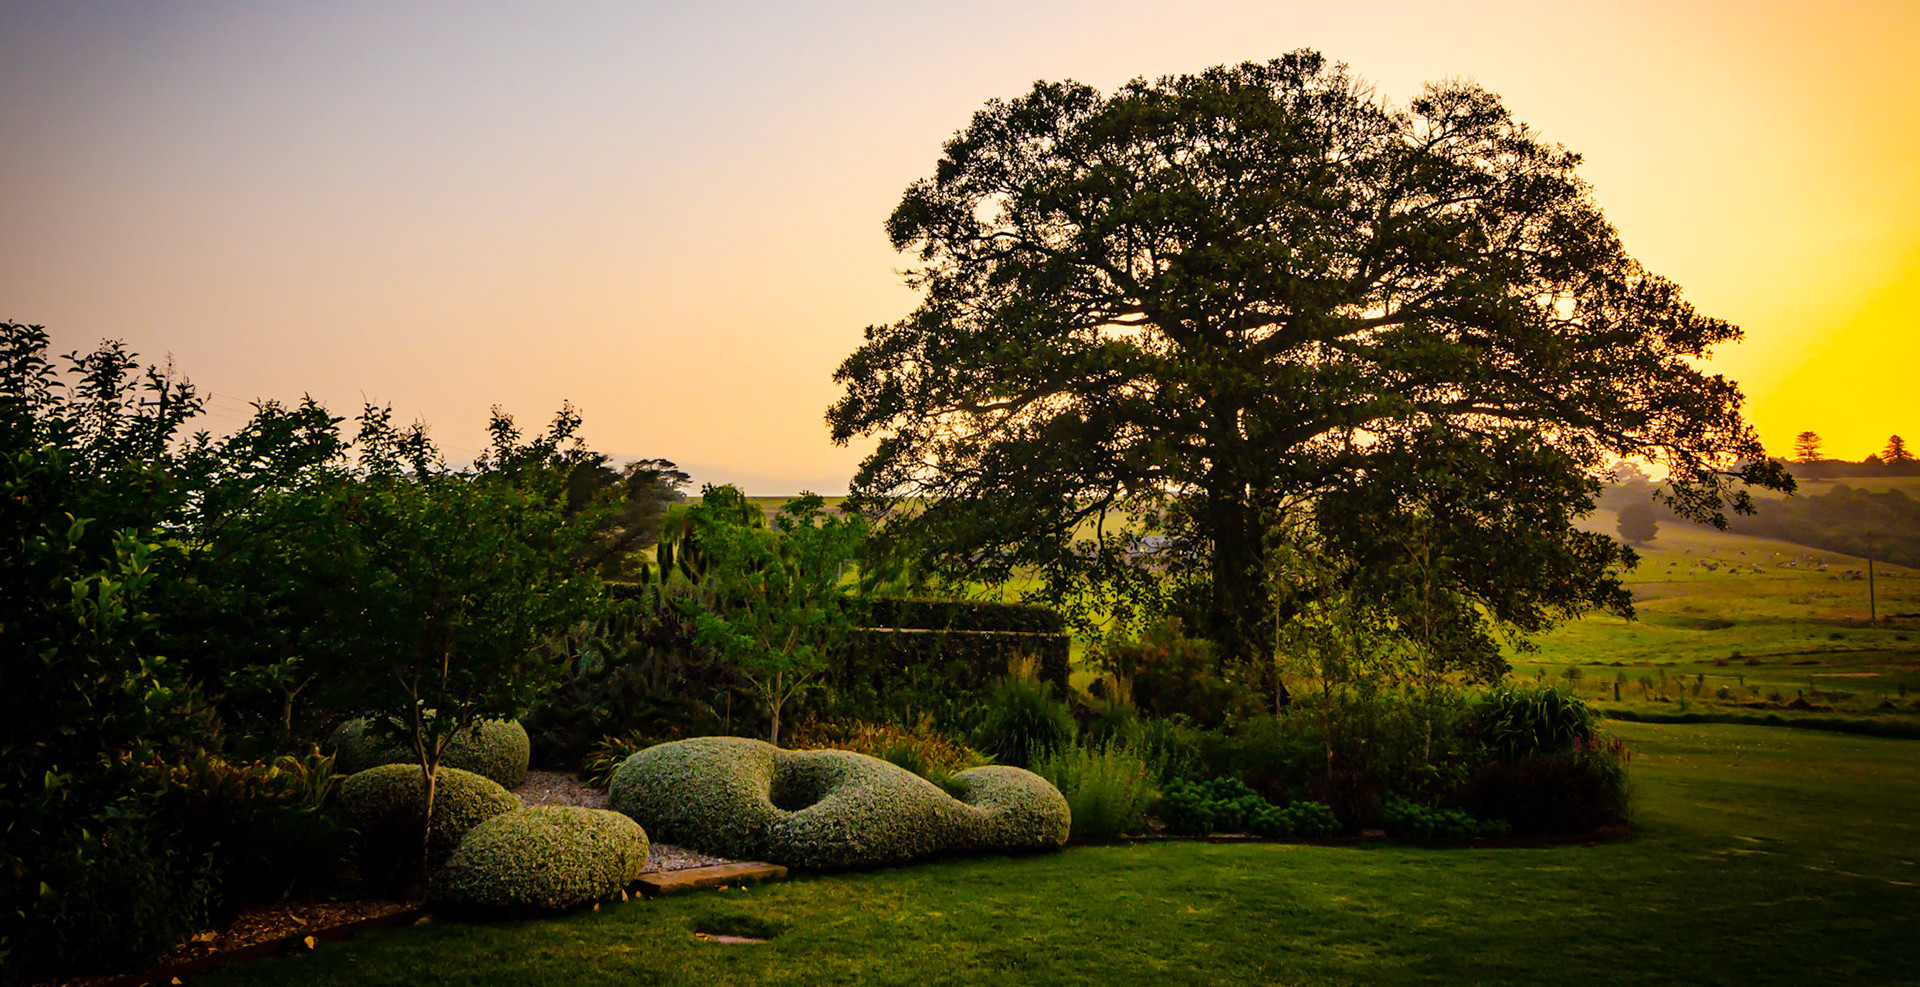 Sunset over the Perennial beds and lawn.